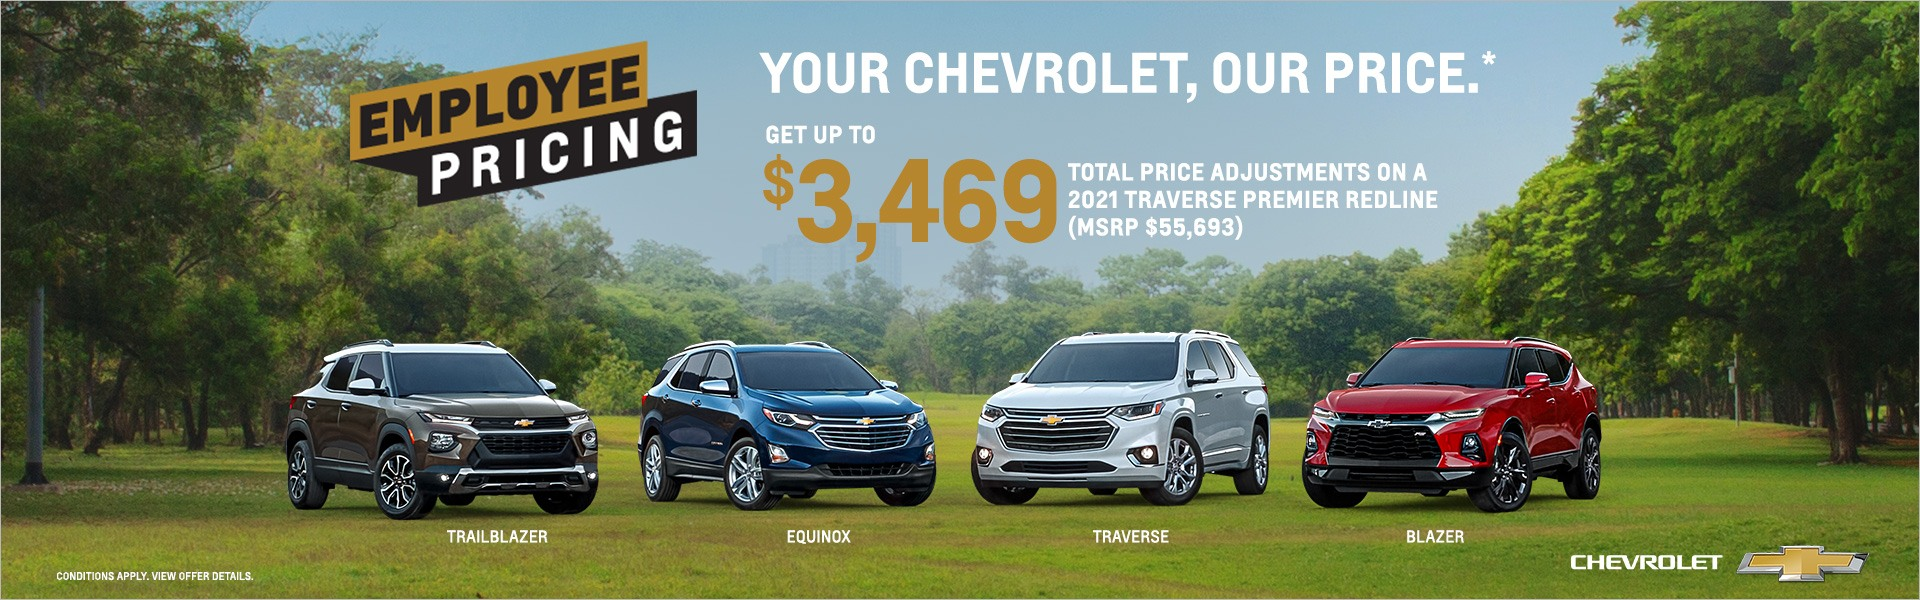 Chevrolet Family - Central - English